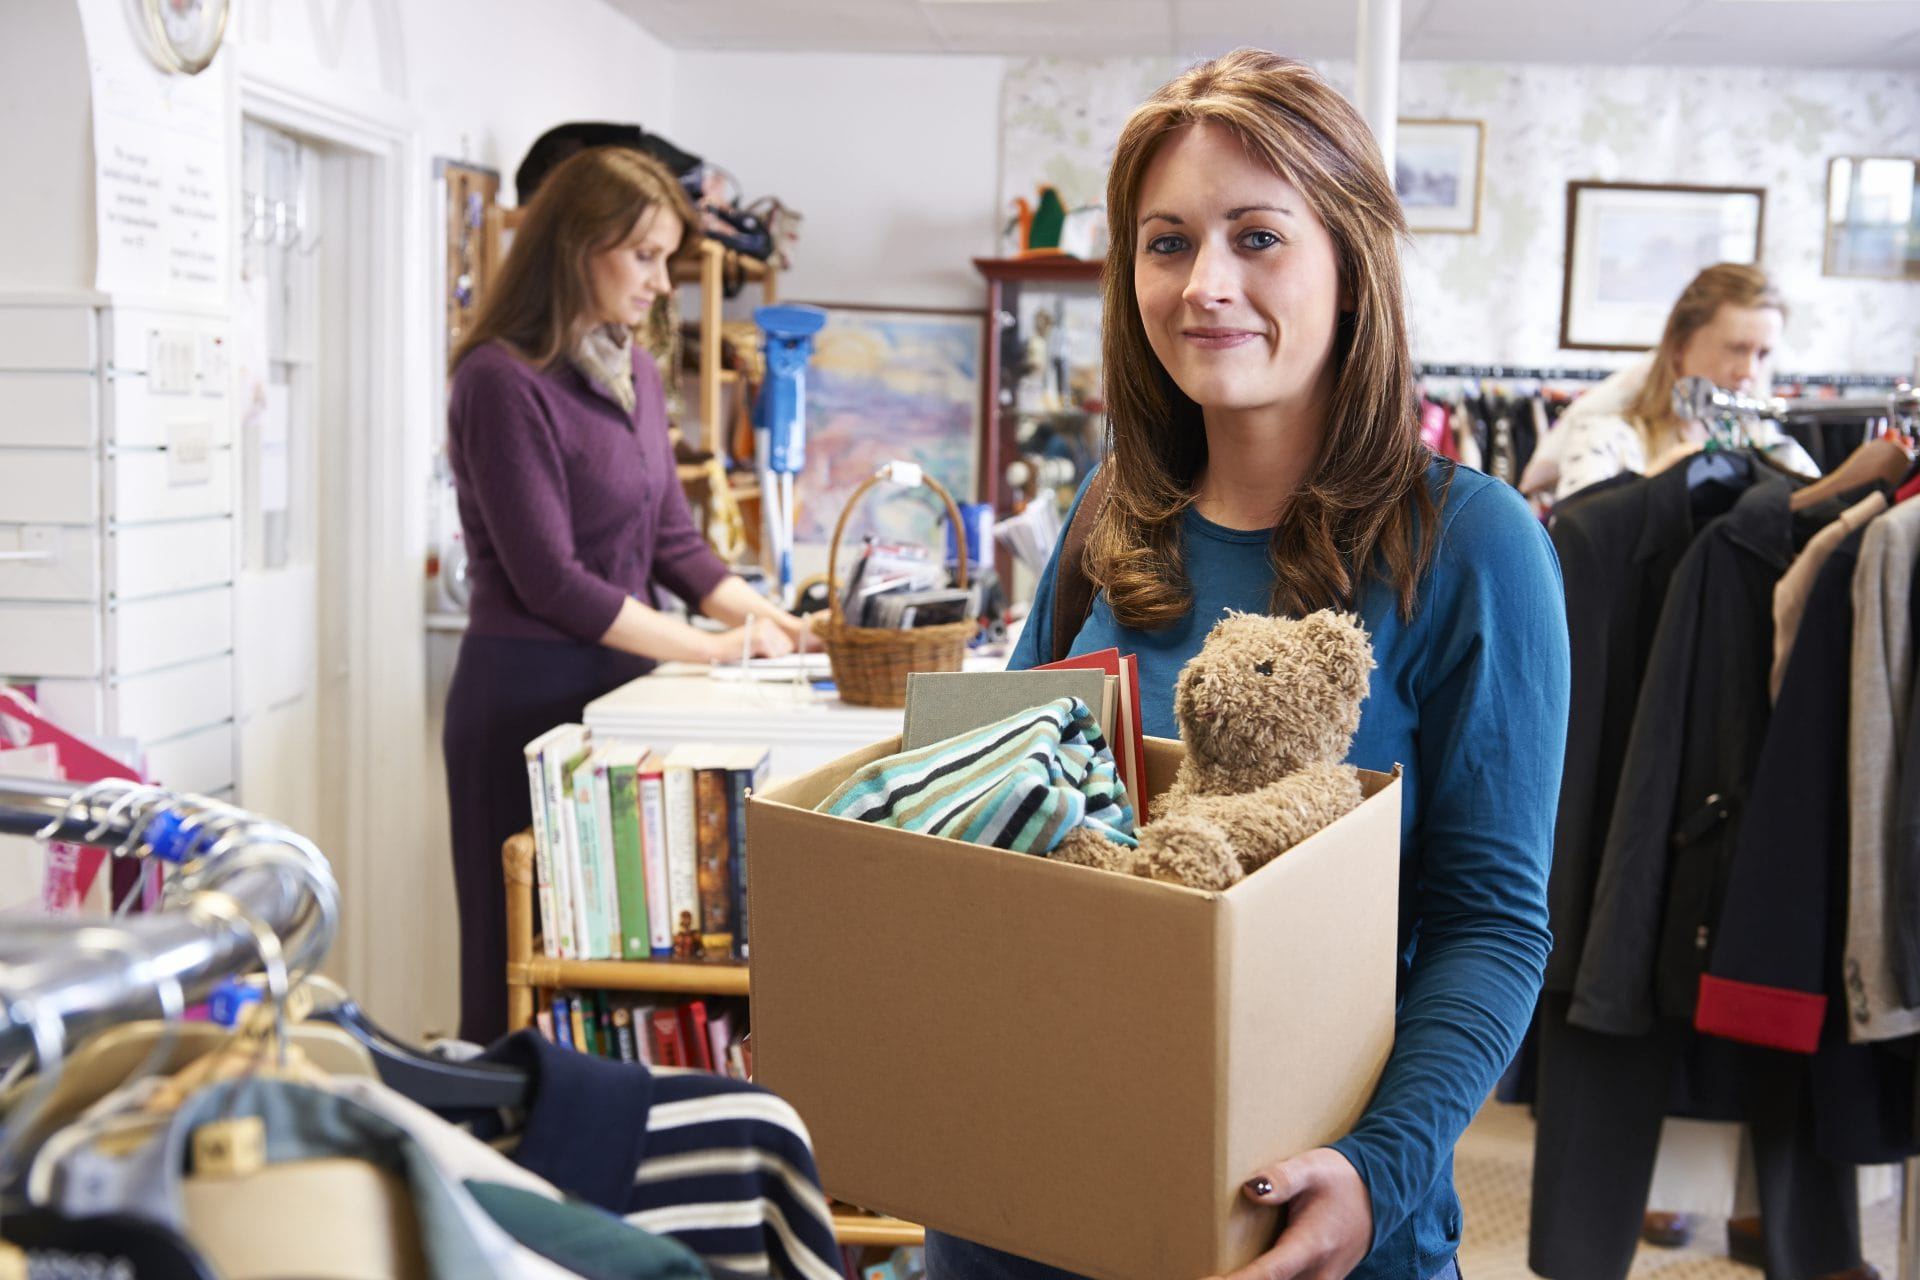 https://www.shutterstock.com/image-photo/woman-donating-unwanted-items-charity-shop-341522720